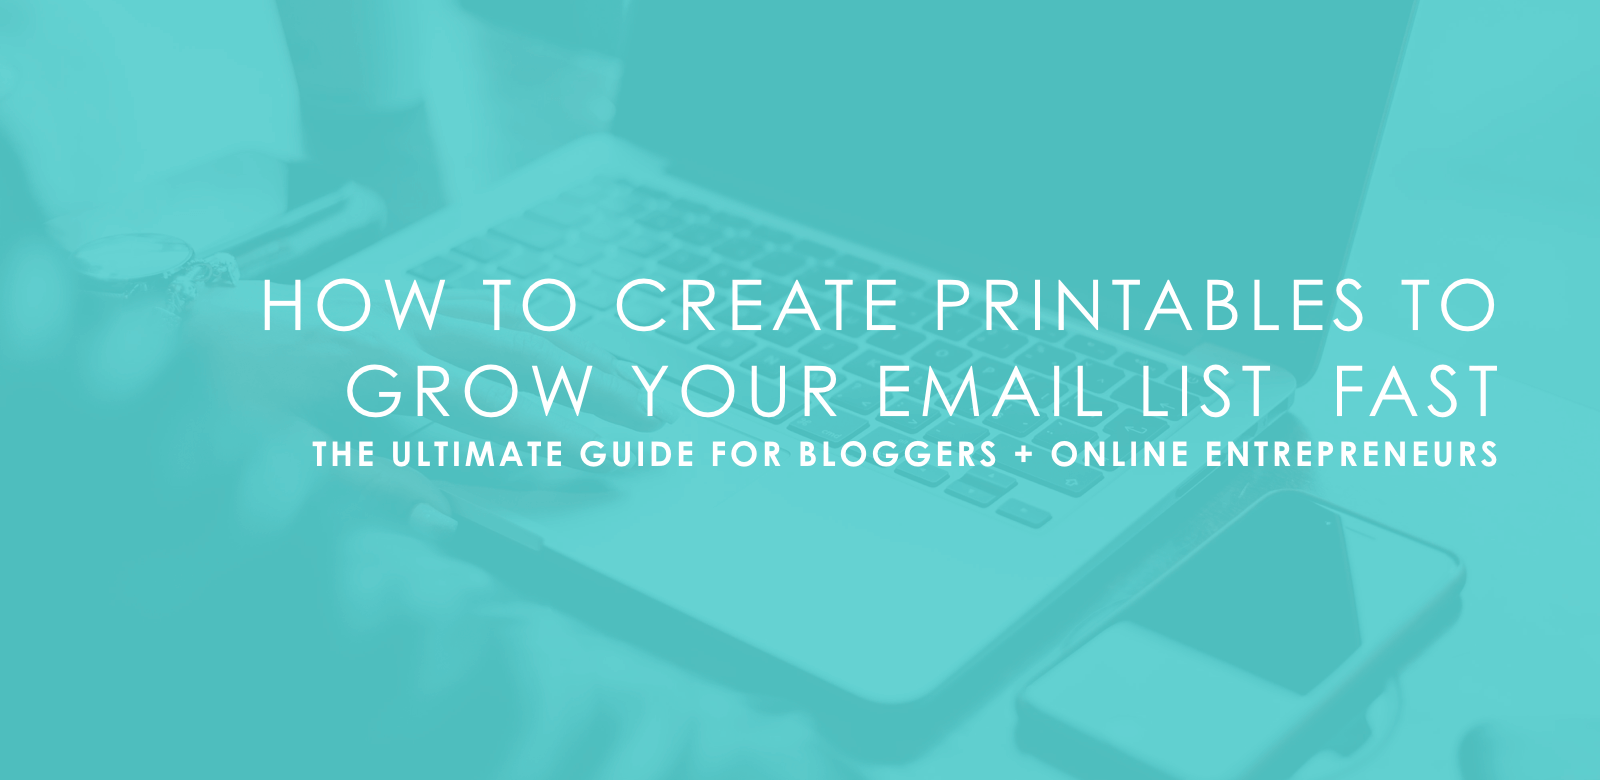 How to Create Printables To Grow Your Email List Fast